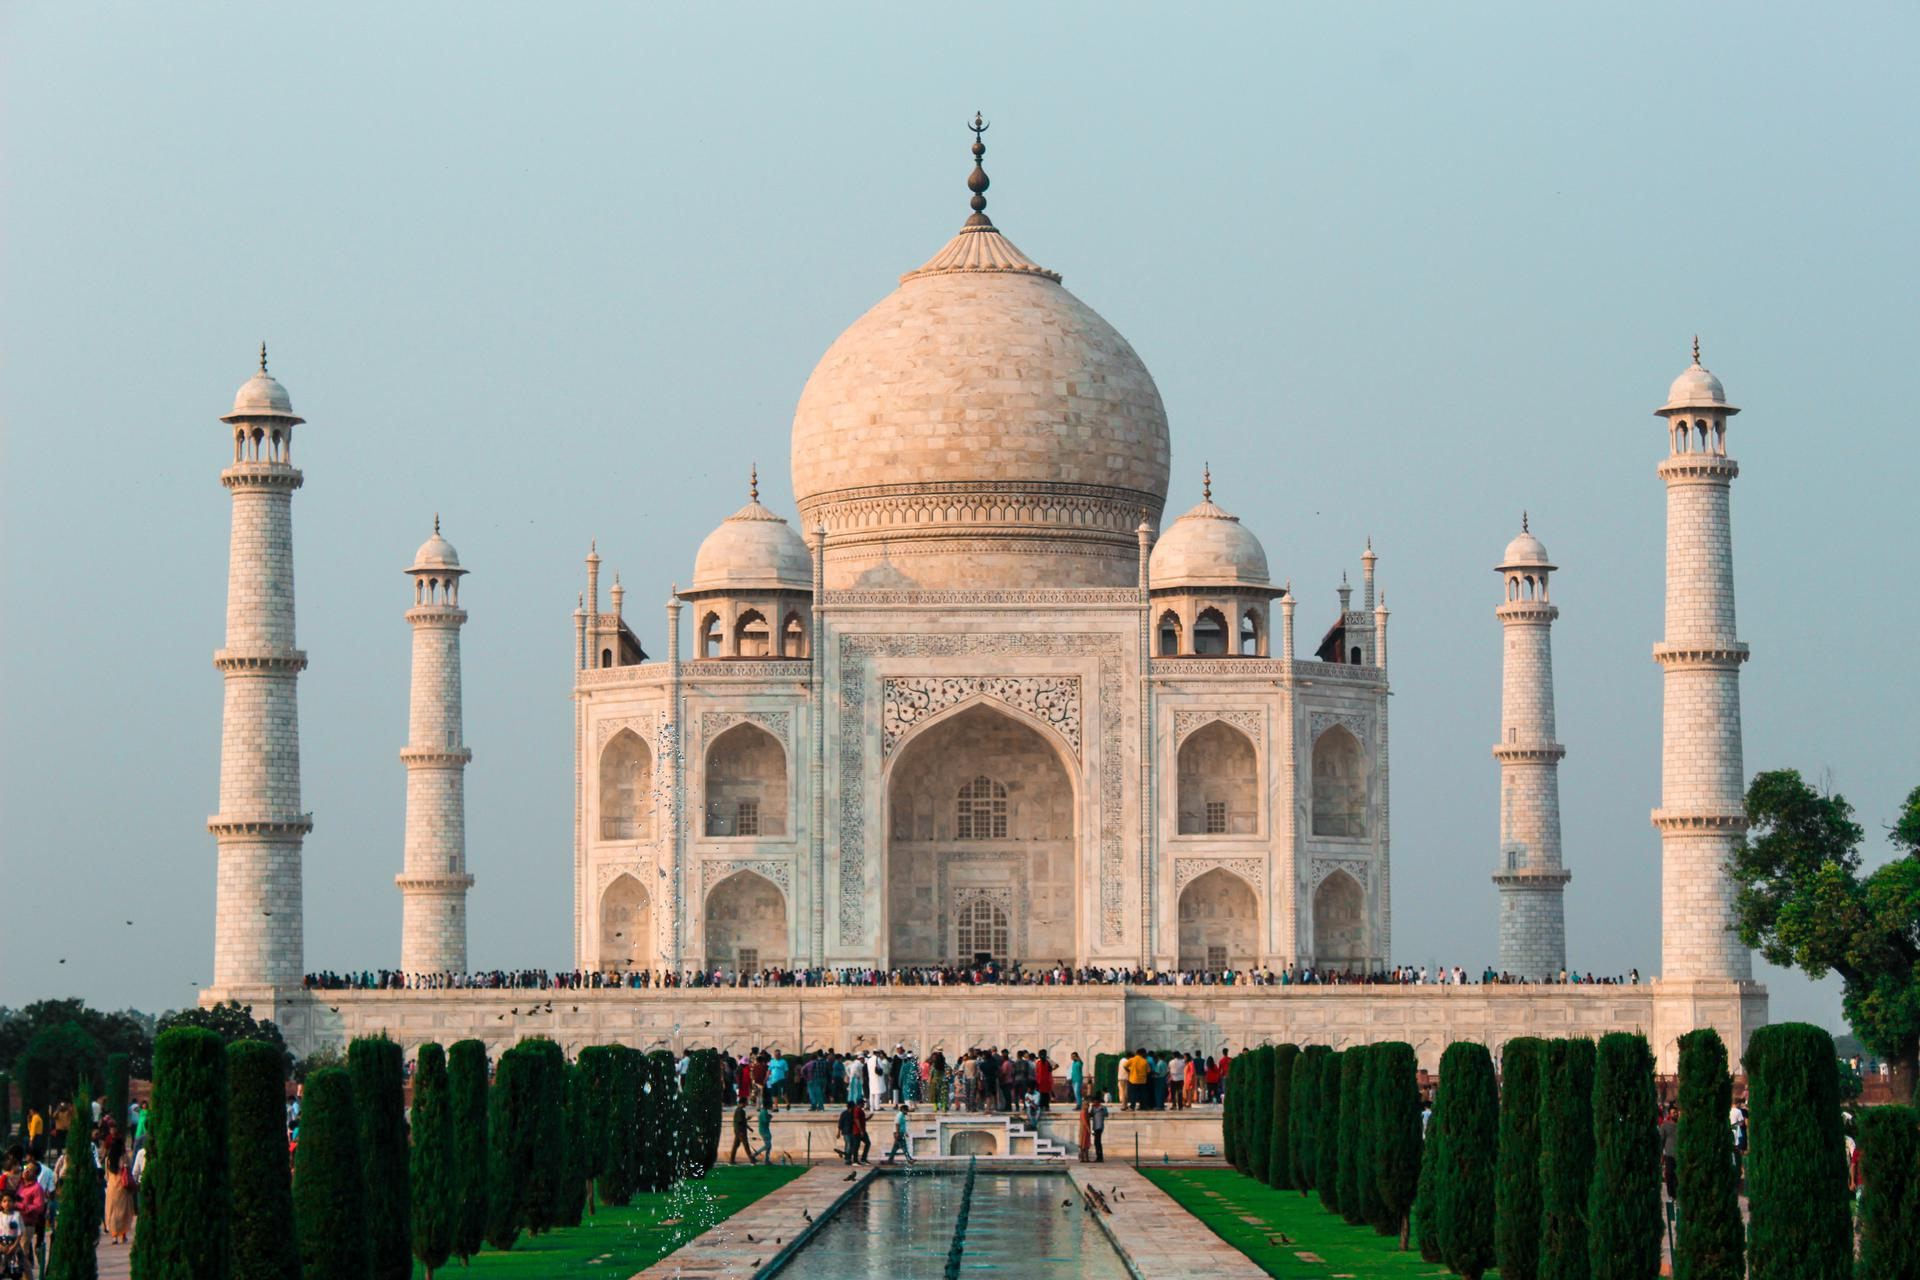 The Taj Mahal will become the first Indian monument to have a dedicated space for mothers to feed their babies